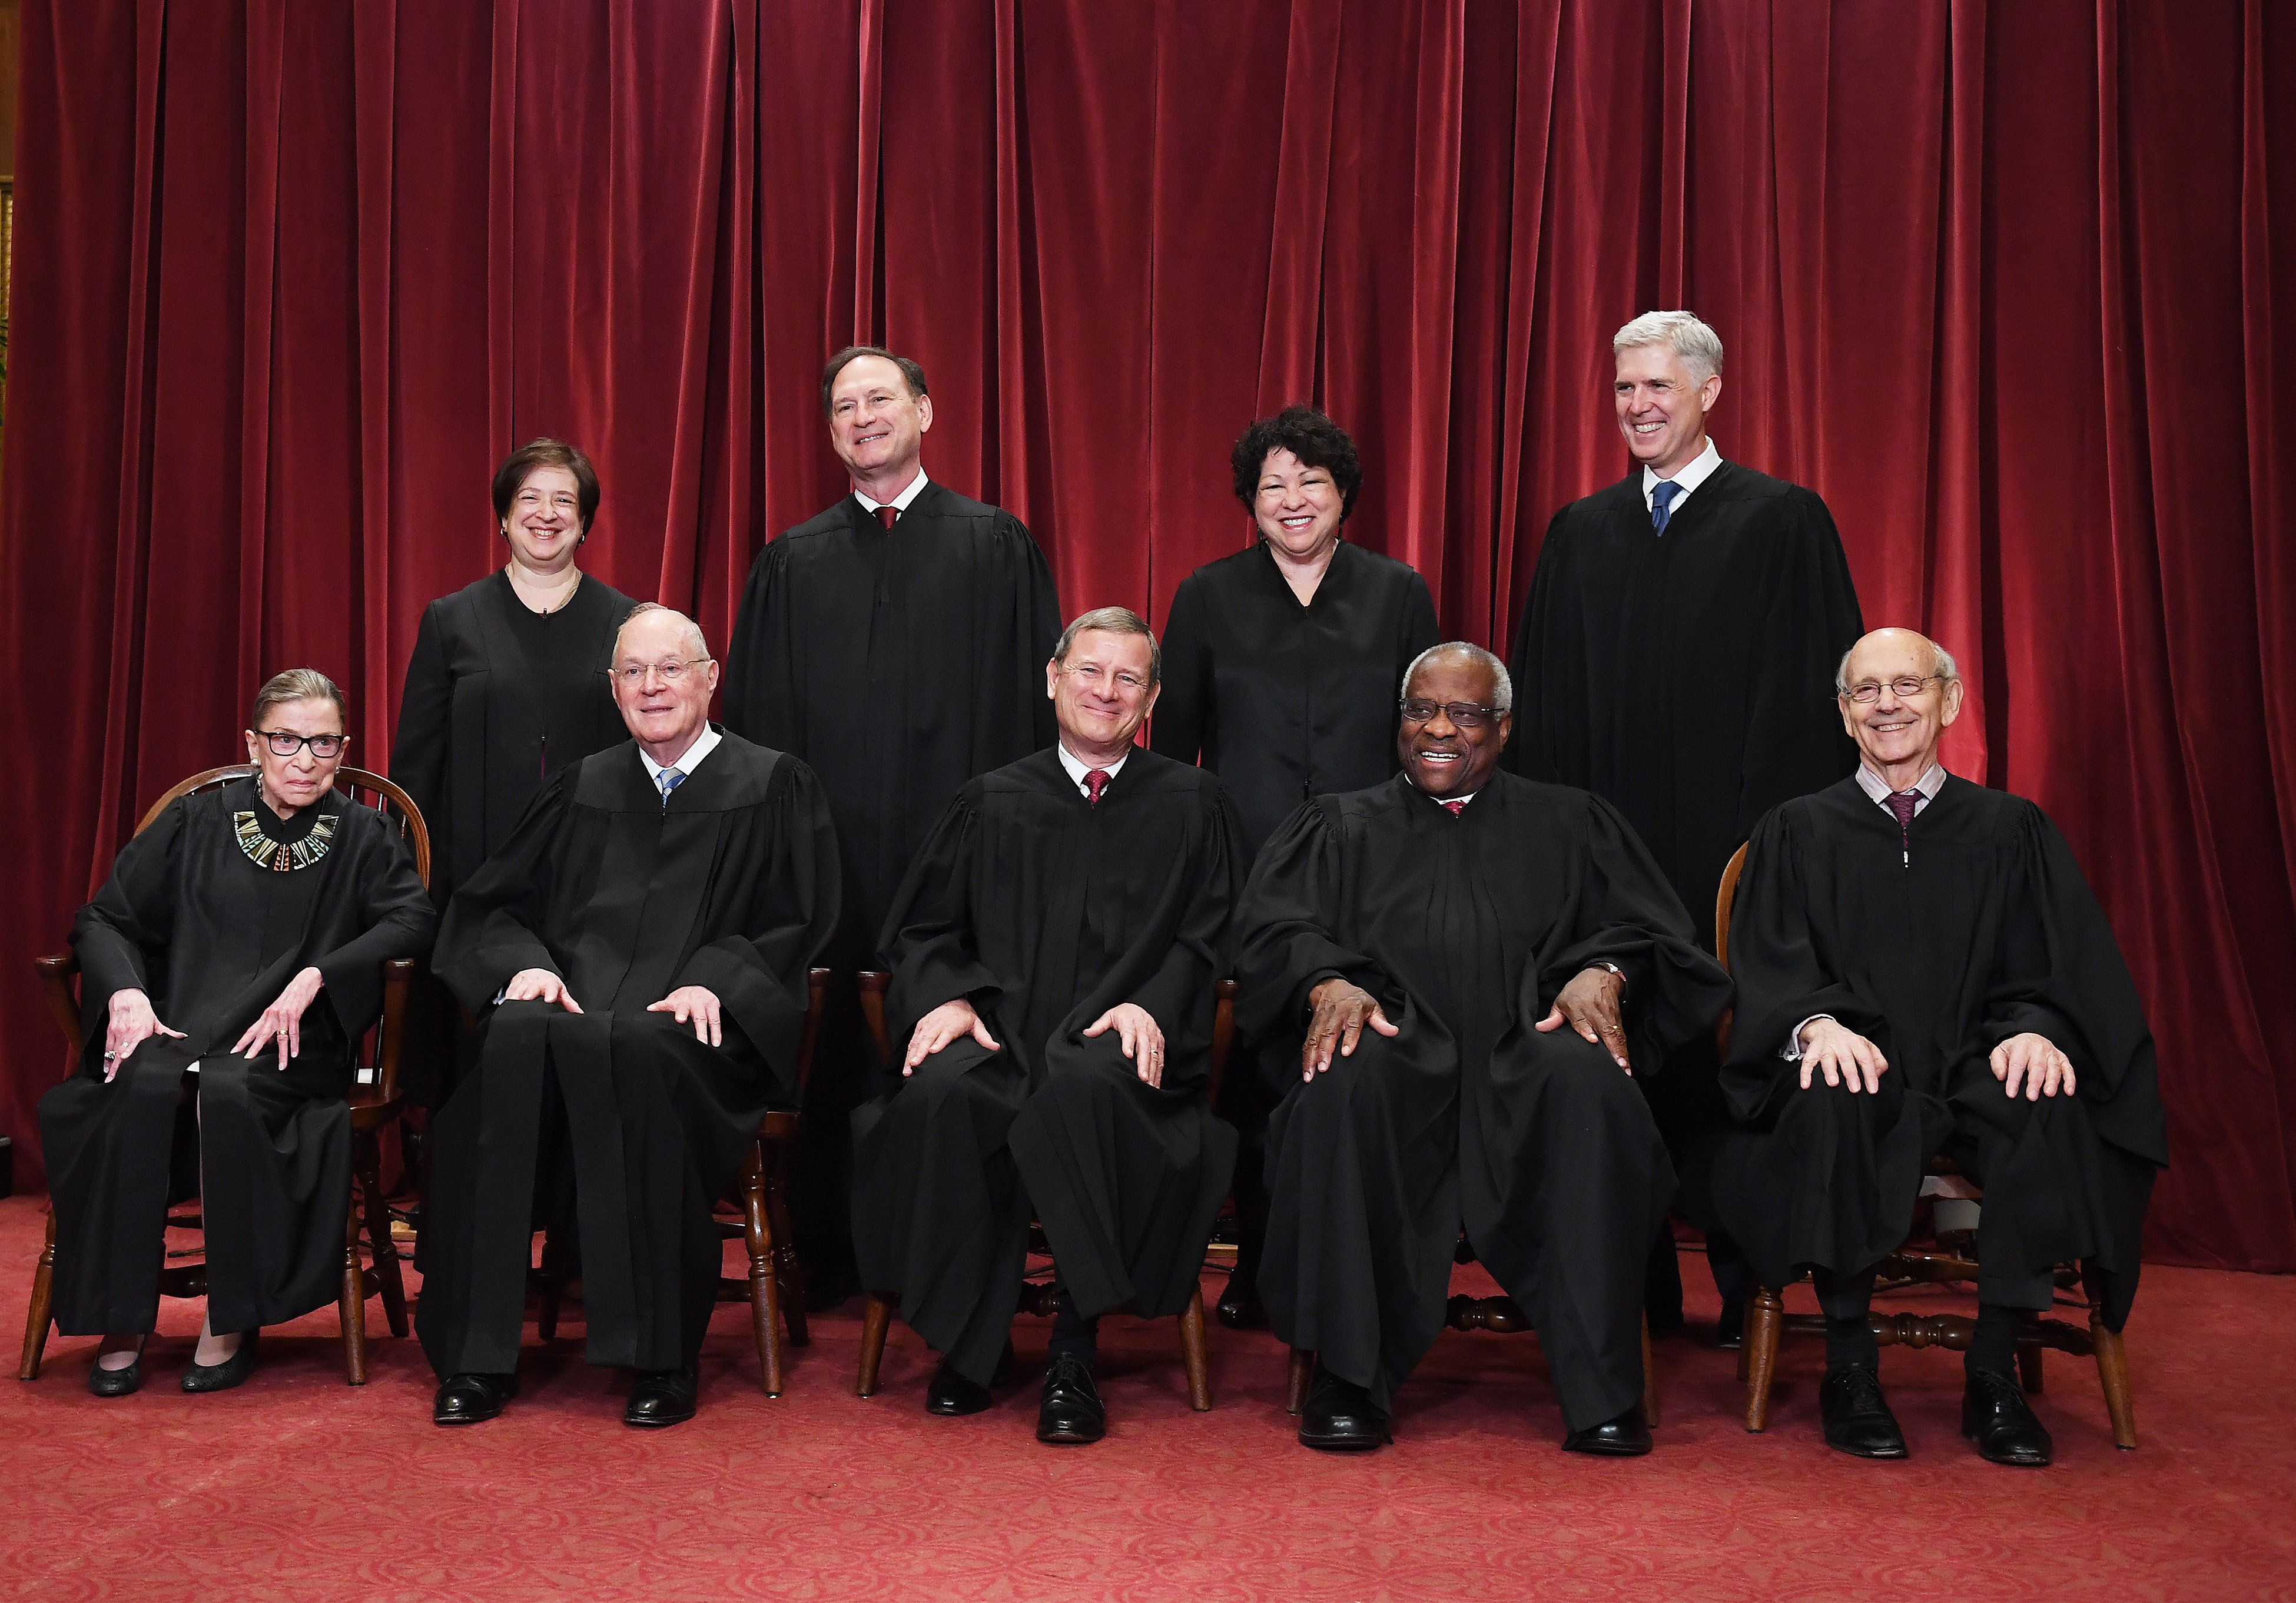 WASHINGTON, DC - JUNE 01: Seated from left, Associate Justice Ruth Bader Ginsburg, Associate Justice Anthony M. Kennedy, Chief Justice of the United States John G. Roberts, Associate Justice Clarence Thomas, and Associate Justice Stephen Breyer. Standing from left, Associate Justice Elena Kagan, Associate Justice Samuel Alito Jr., Associate Justice Sonia Sotomayor, and Associate Justice Neil Gorsuch pose for a portrait in the east conference room of the building of the Supreme Court of the United States on Thursday June 01, 2017 in Washington, DC (Photo by Matt McClain/The Washington Post via Getty Images)